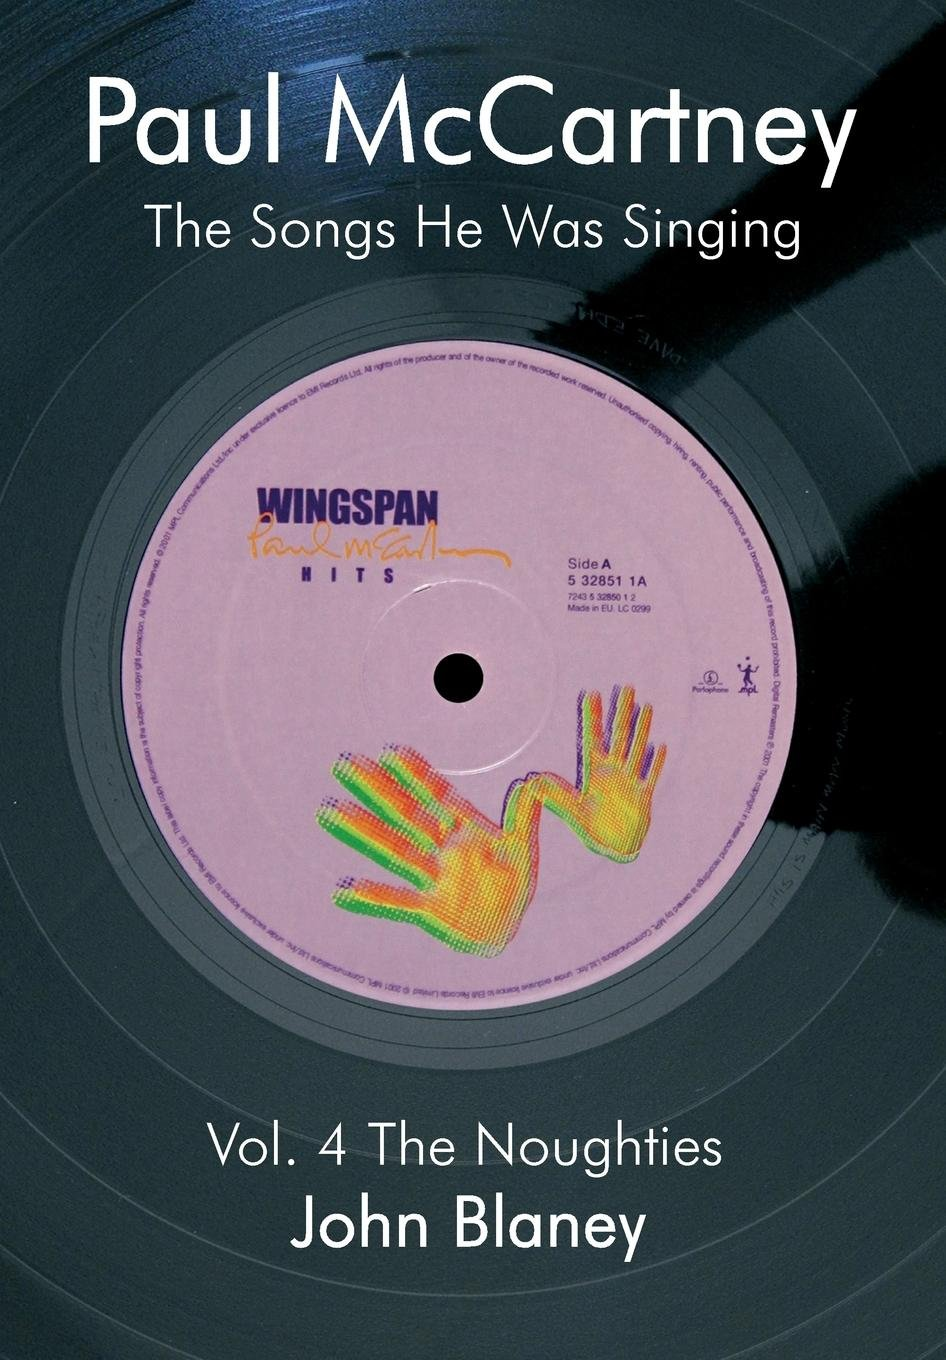 Paul McCartney: The Noughties Vol.4: The Songs He Was Singing PDF